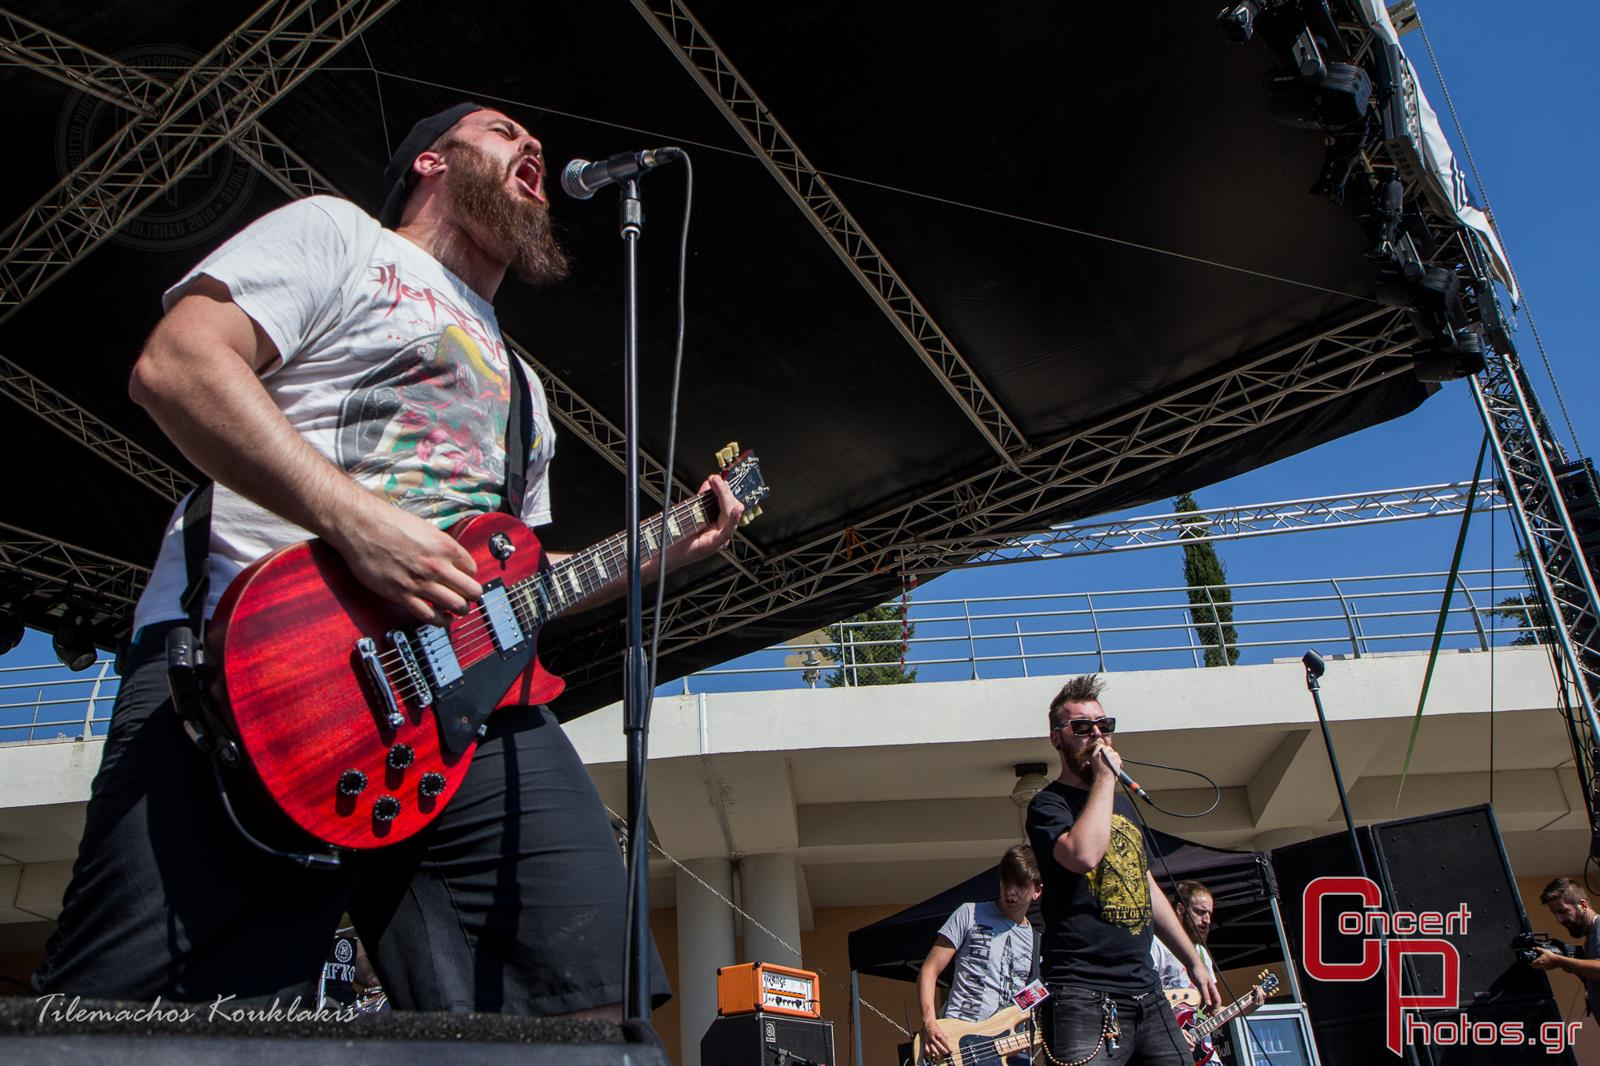 Heavy By The Sea 2014-Heavy By The Sea 2014 photographer:  - concertphotos_20140627_09_10_43-2